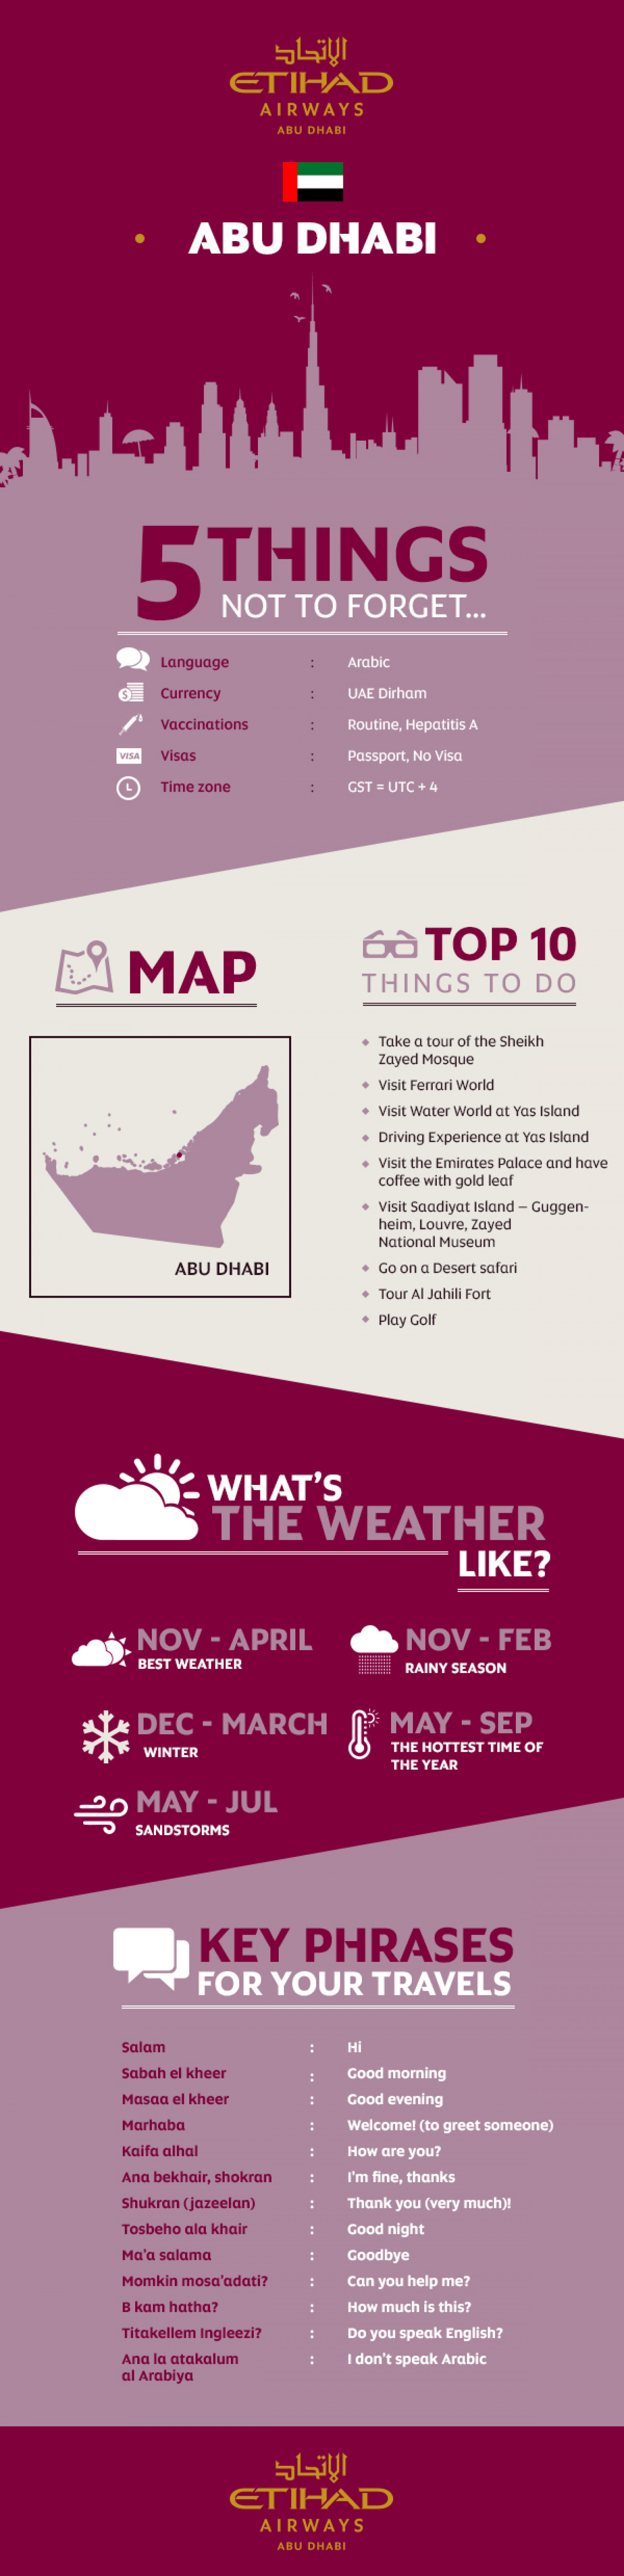 Etihad's guide to travelling to Abu Dhabi Infographic